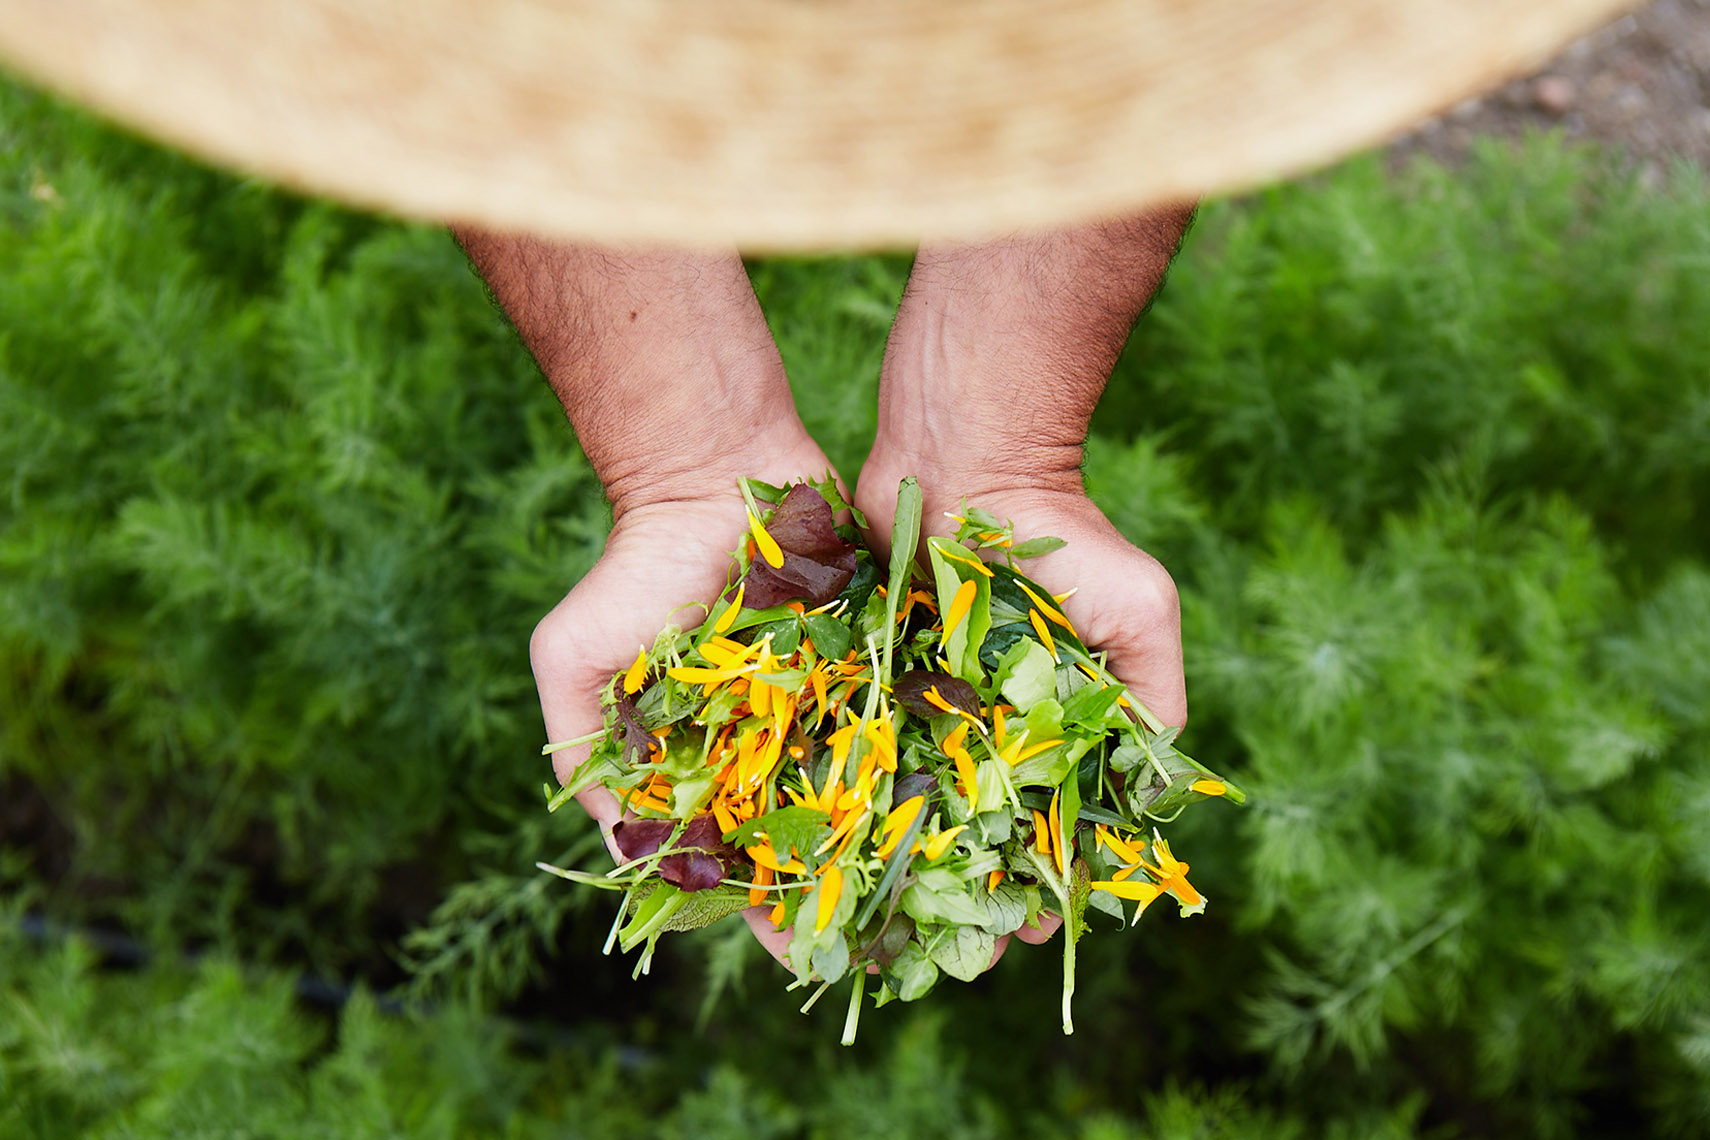 AlanCampbellPhotography, Spring Salad mix ion gardners hands